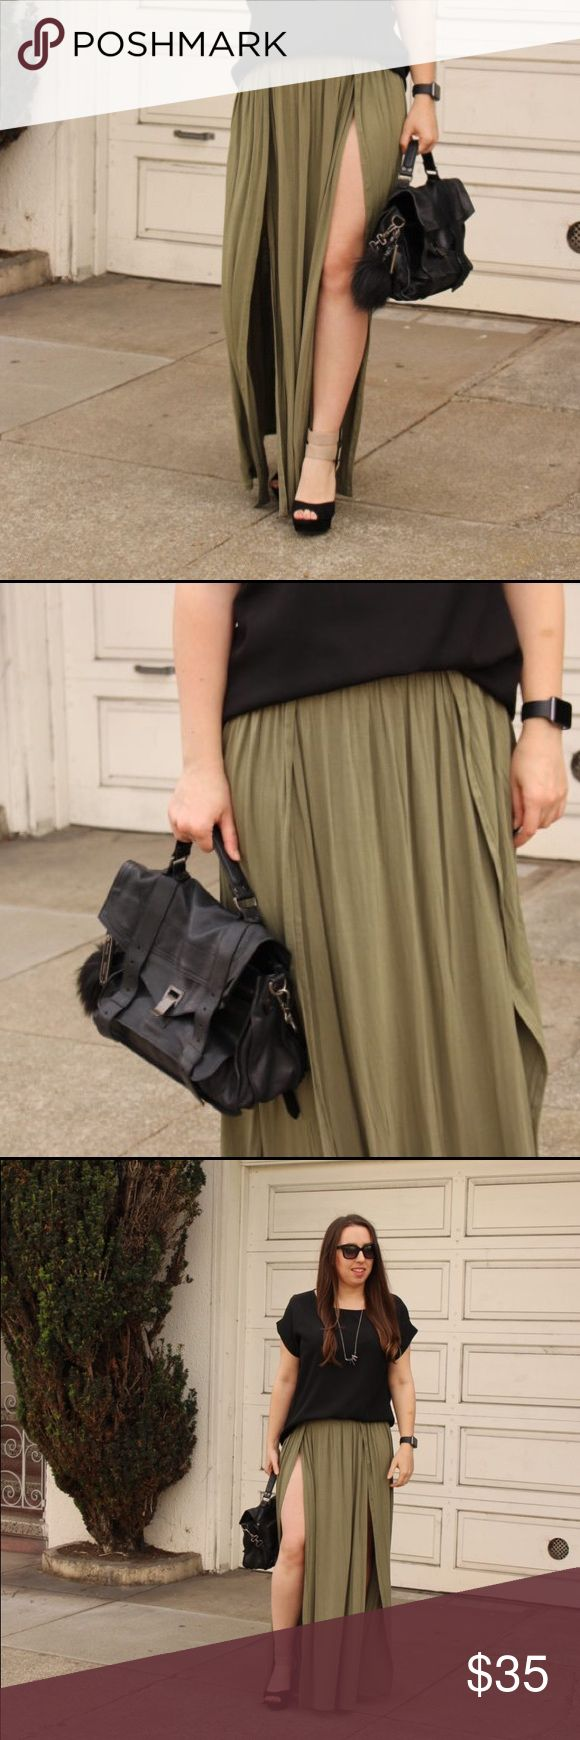 """Double slit olive maxi skirt Very very long maxi skirt, perfect for a tall person! I am 5'7"""" and even with heels on this skirt touches the floor. Very high slits on both the left and right for double the Angelina Jolie leg moments. Fabric is very soft and comfy. Only worn a few times. No discounts or trades. Tobi Skirts Maxi"""